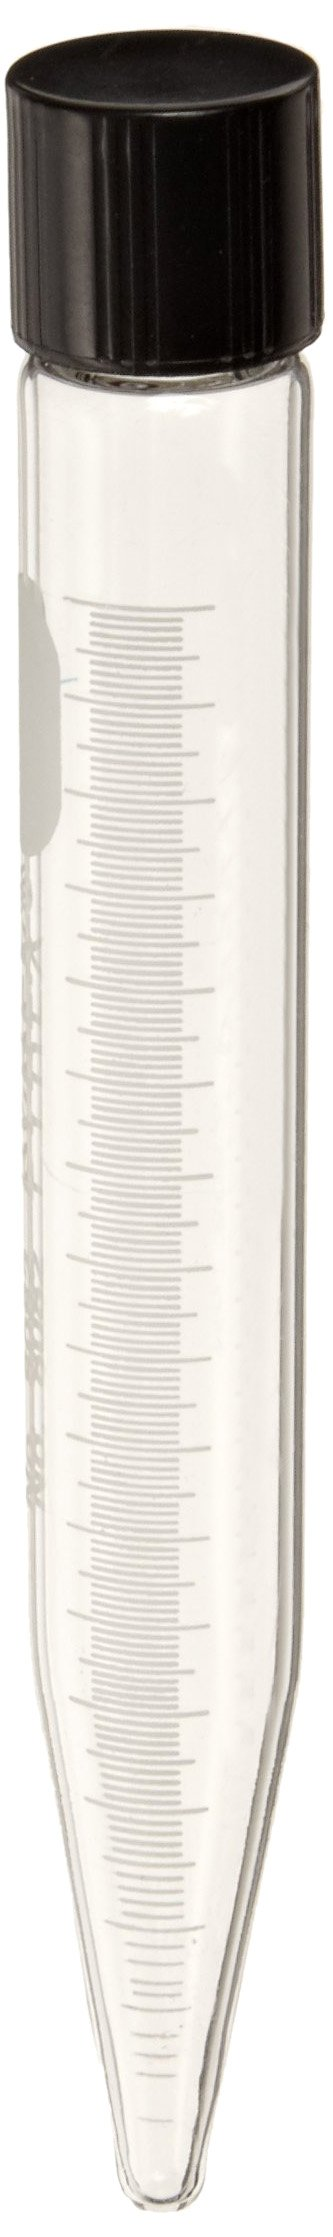 Corning Pyrex 8082-15 Glass Conical Cylindrical 15mL Centrifuge Tube with White Graduations and Screw Cap (Pack of 12)